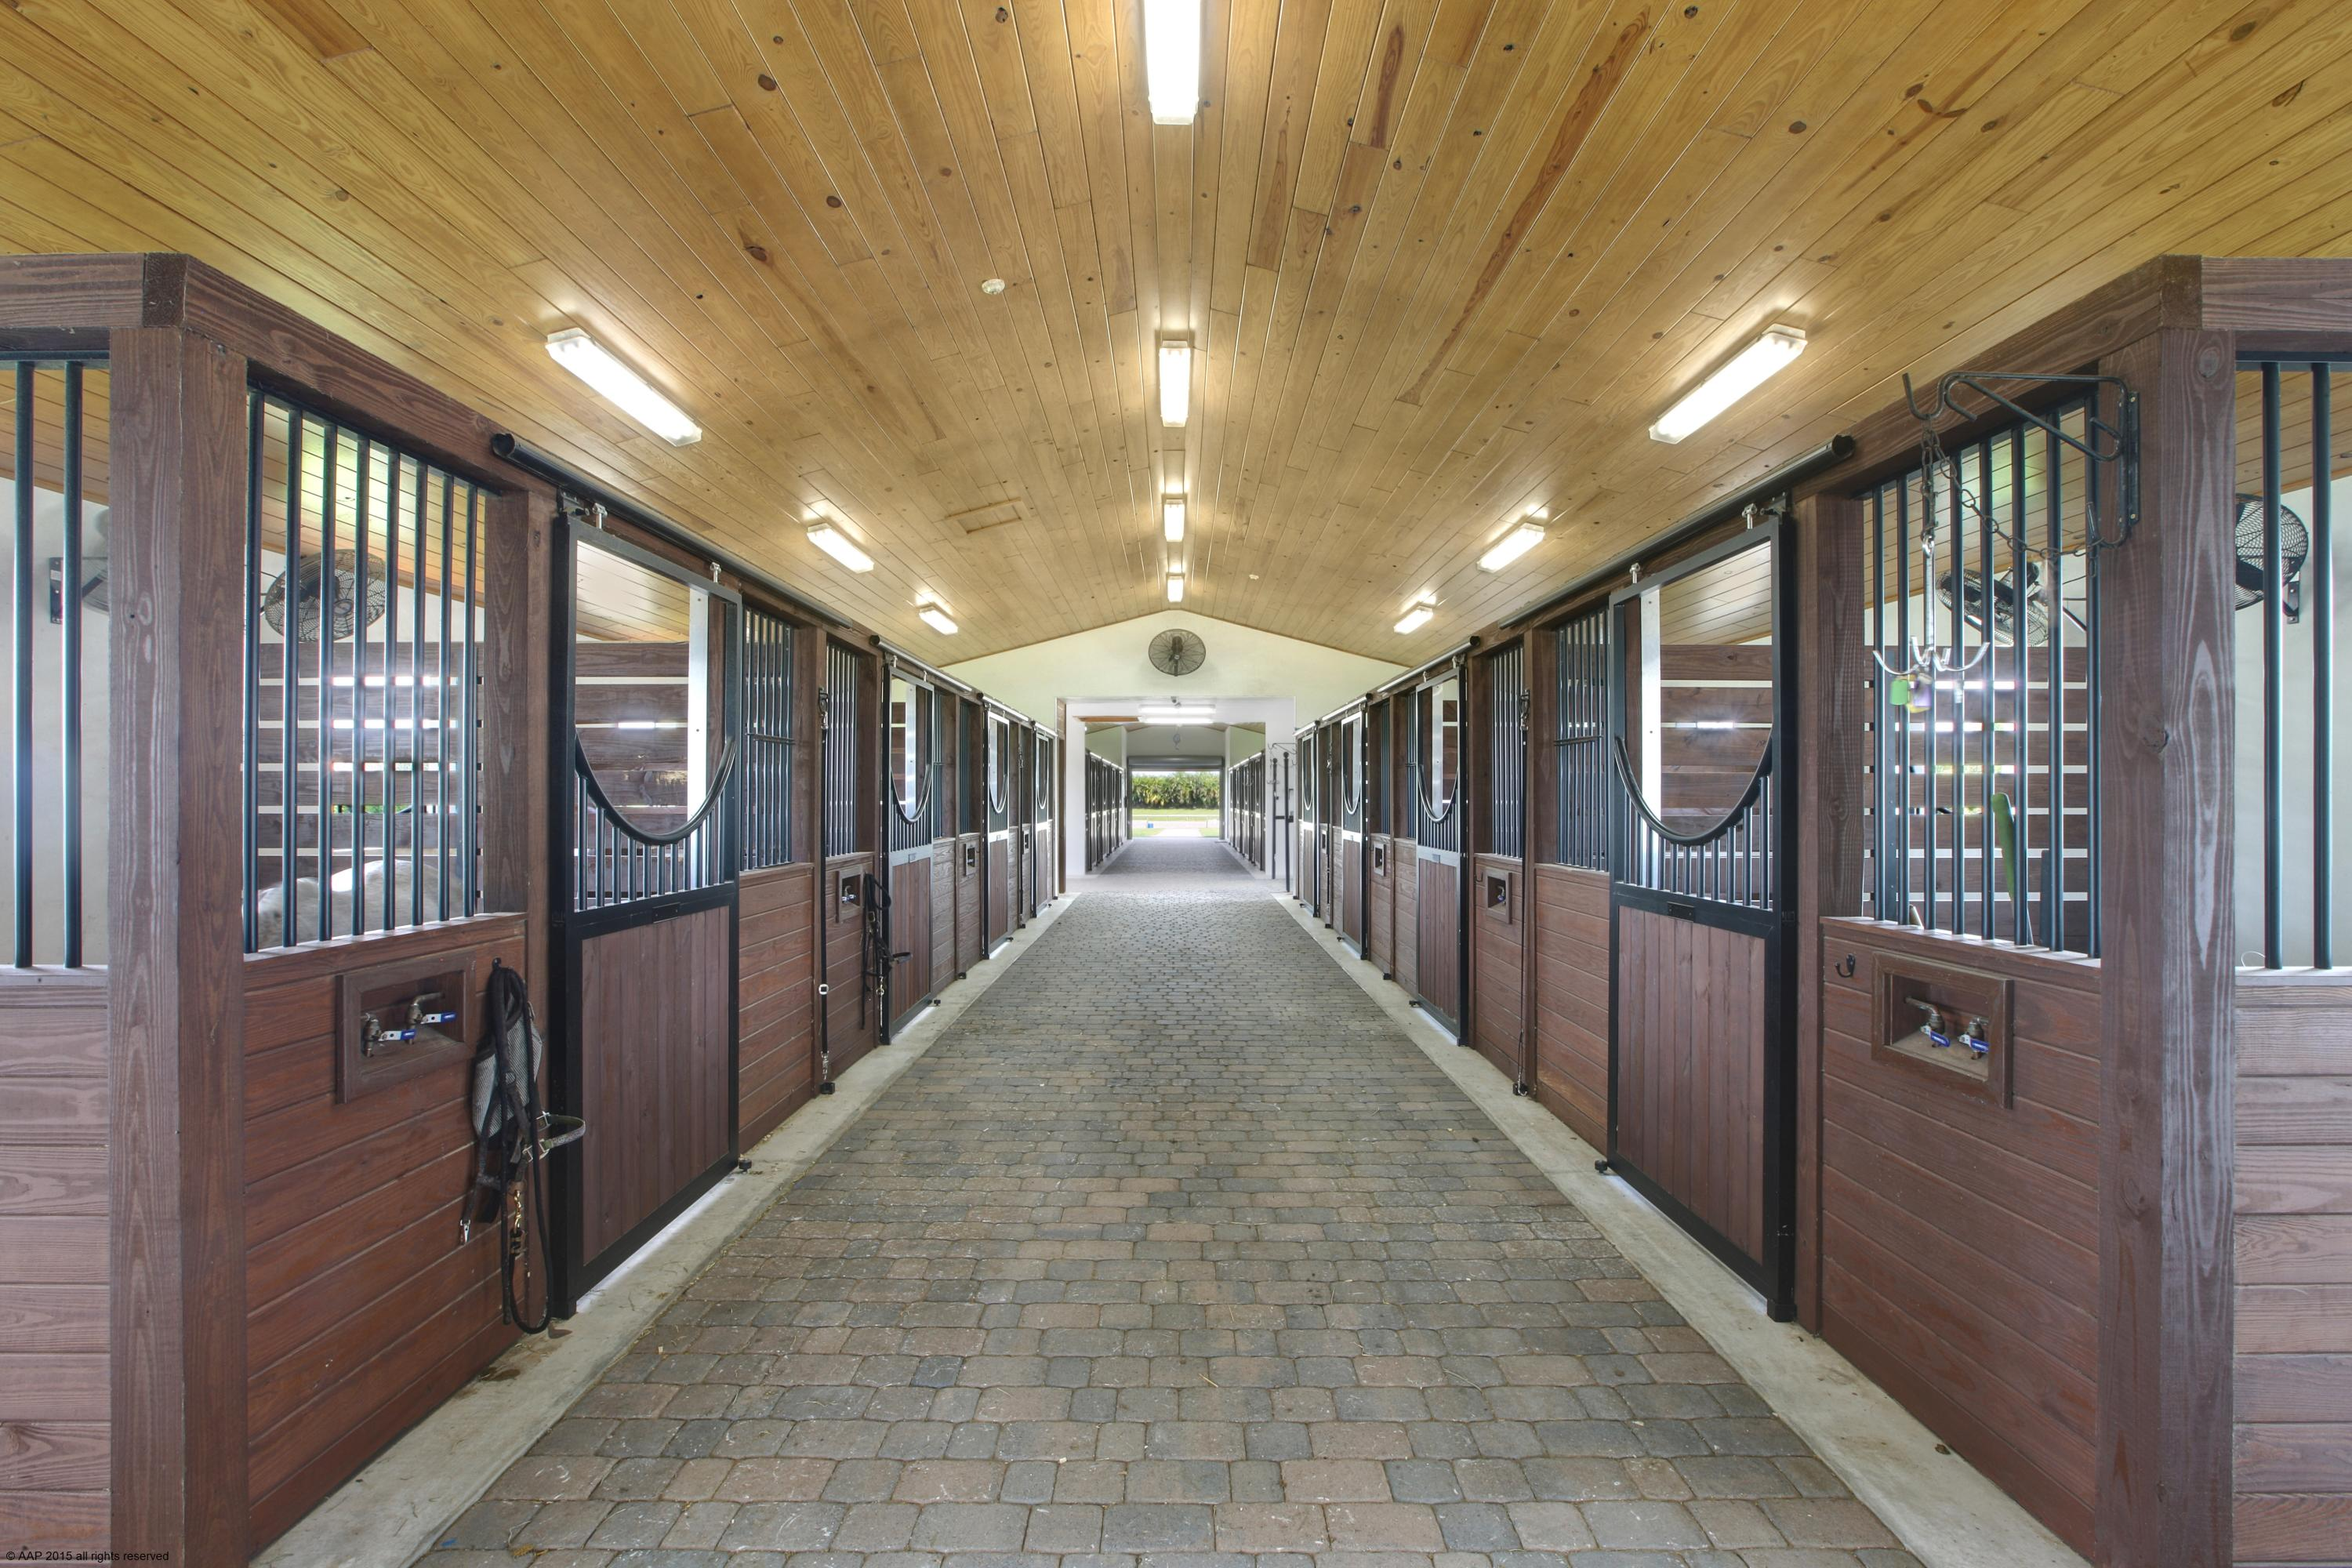 4915 Stables Way, Wellington, Florida 33414, 2 Bedrooms Bedrooms, ,1.5 BathroomsBathrooms,Barn,For Rent,Stables,1,RX-10558395